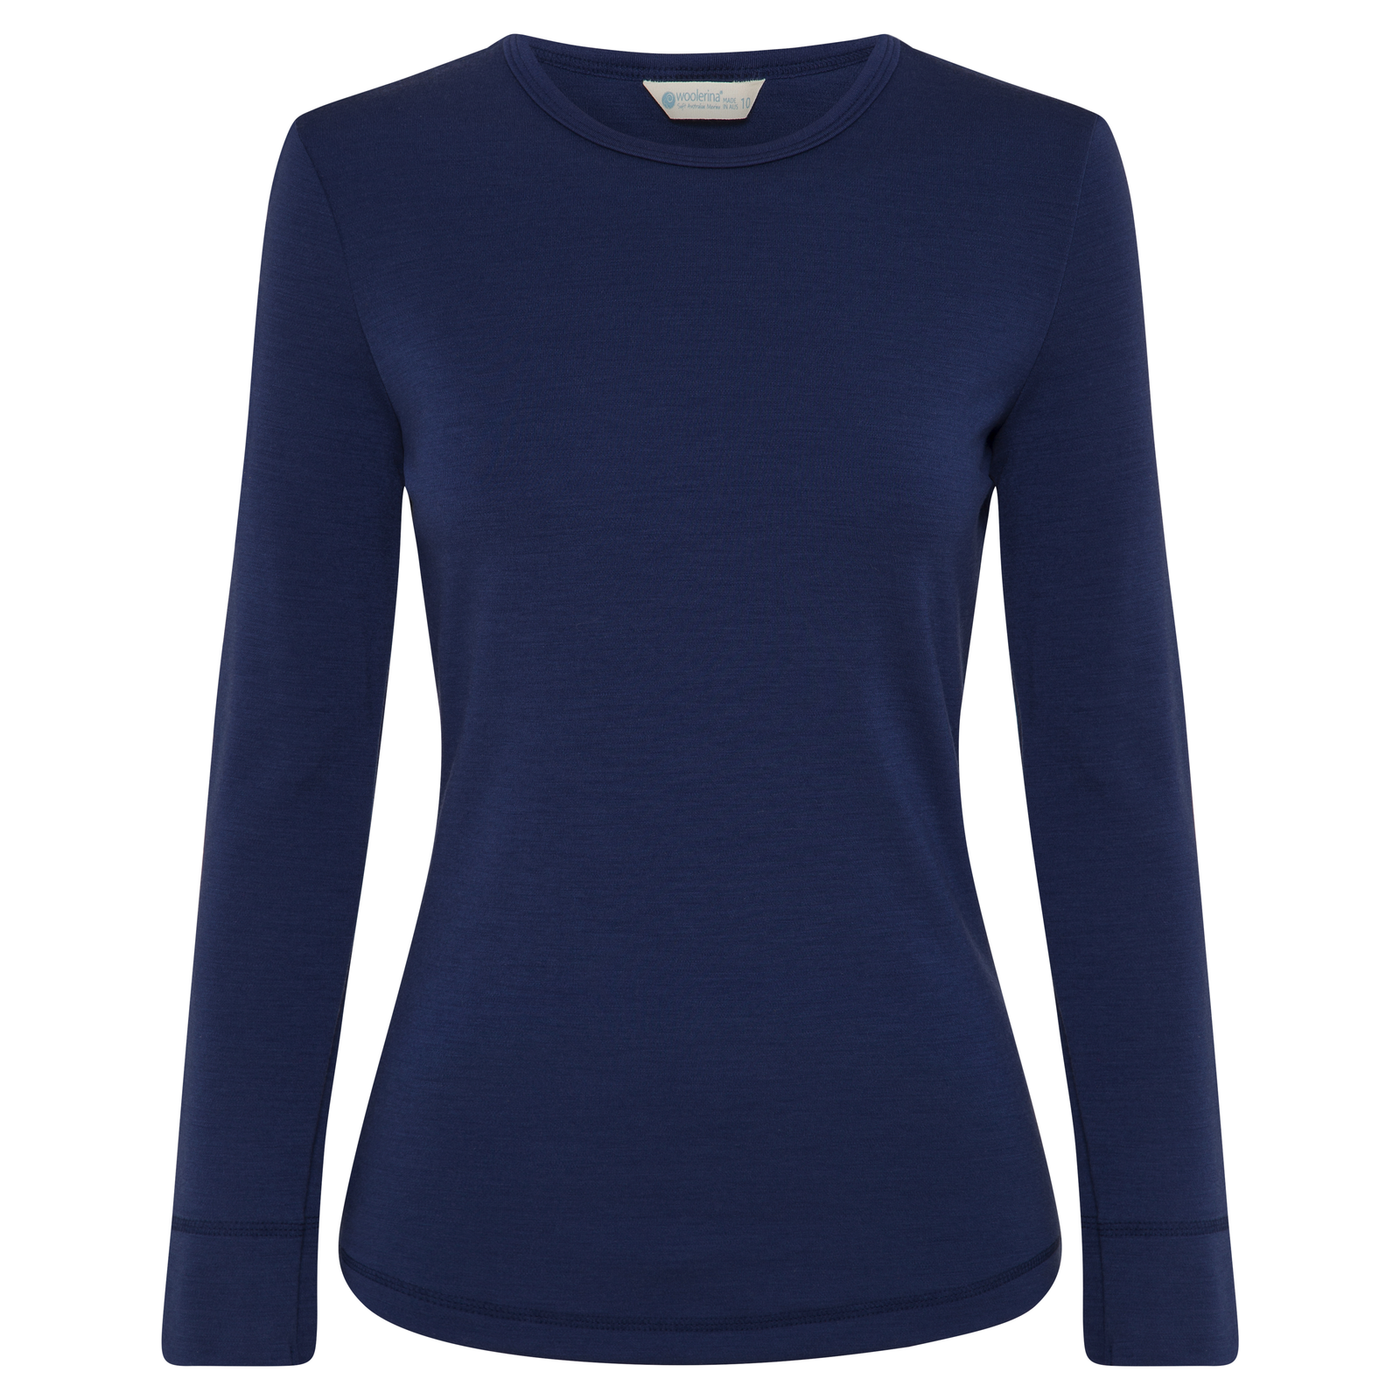 SALE Womens Long Sleeve Crew Neck